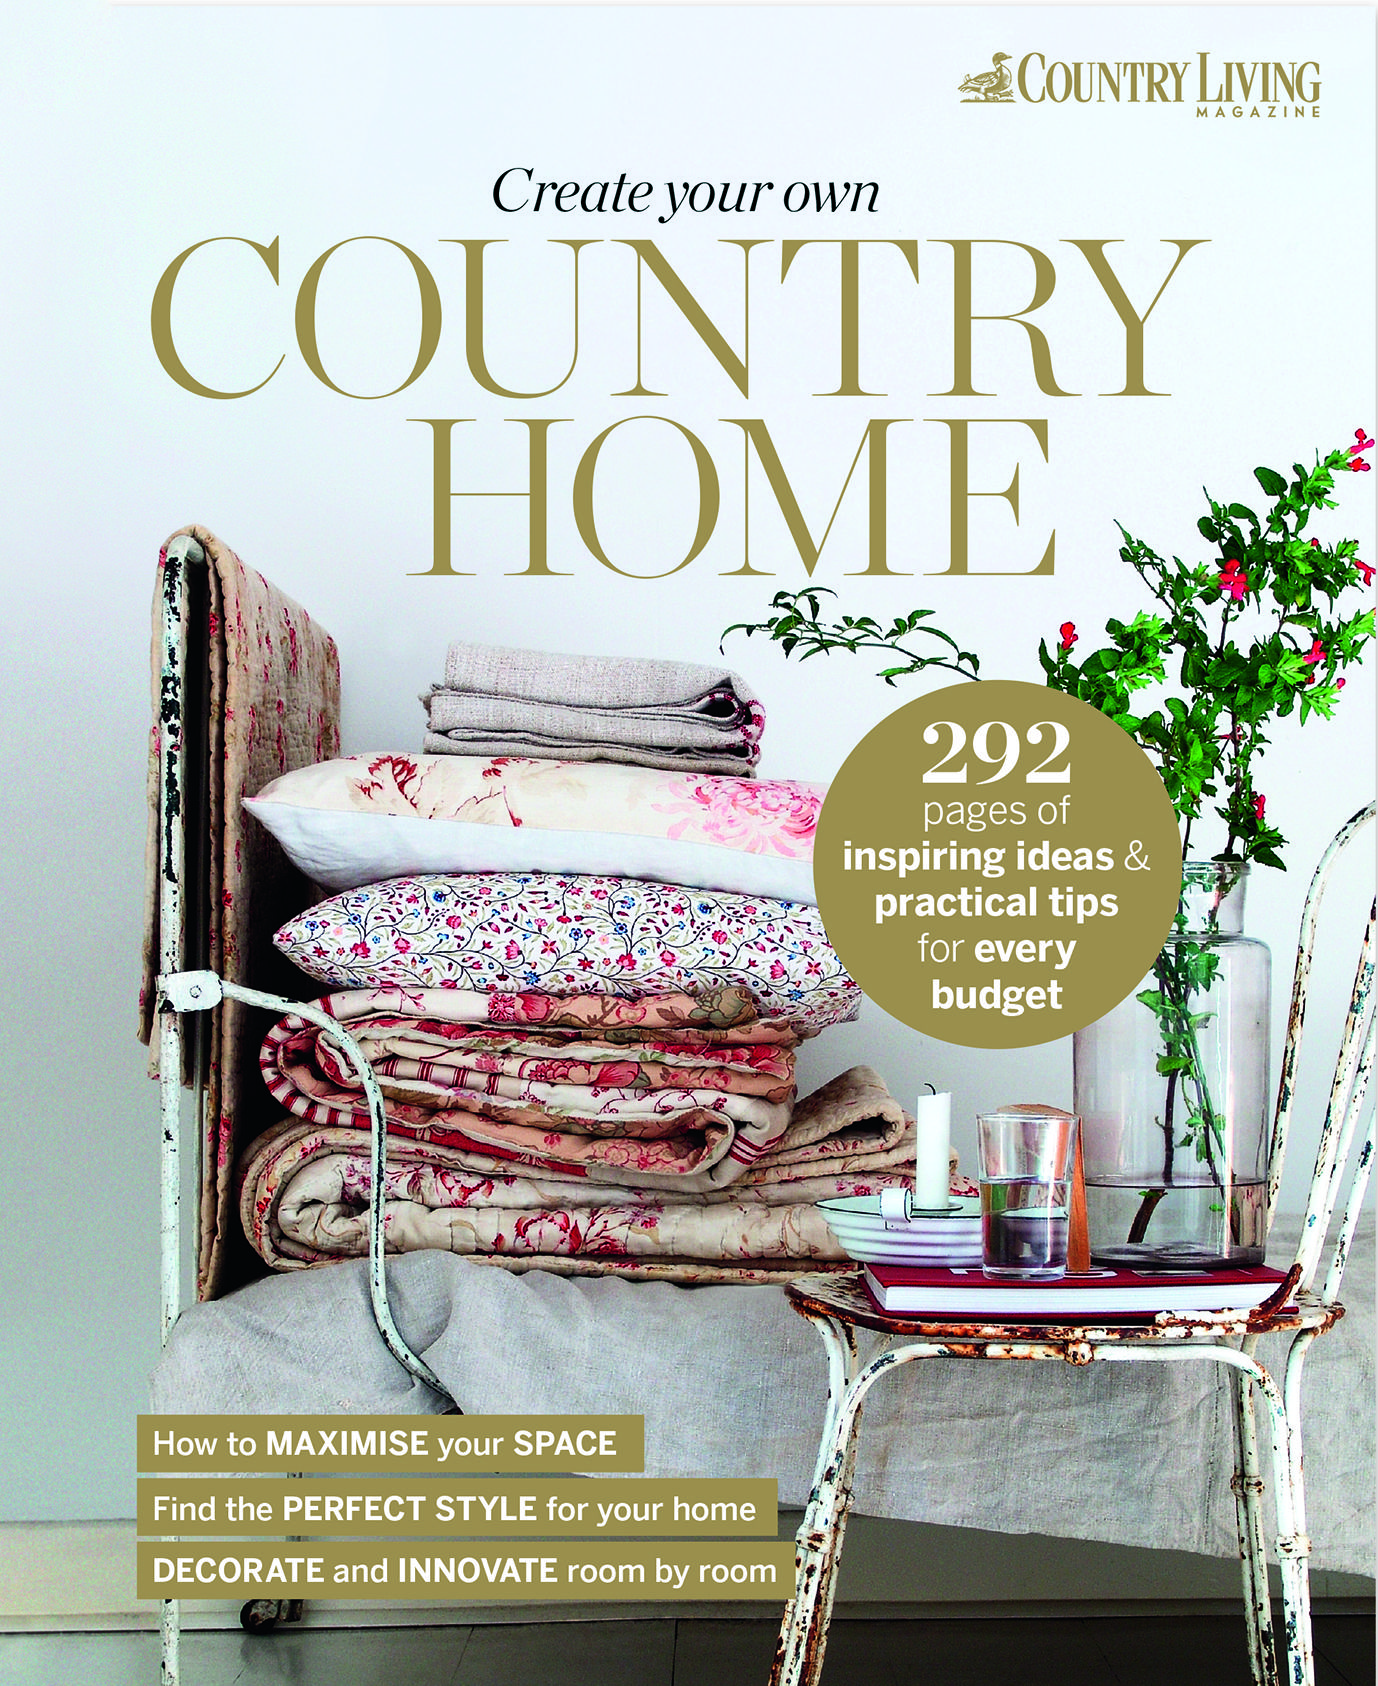 Create Your Own Country Home Country Living Bookazine Order Online Http Wwwhmstaging Cdsglobal Co Uk Country Living Country Living Magazine Pop Up Market Country living magazine subscription cancellation